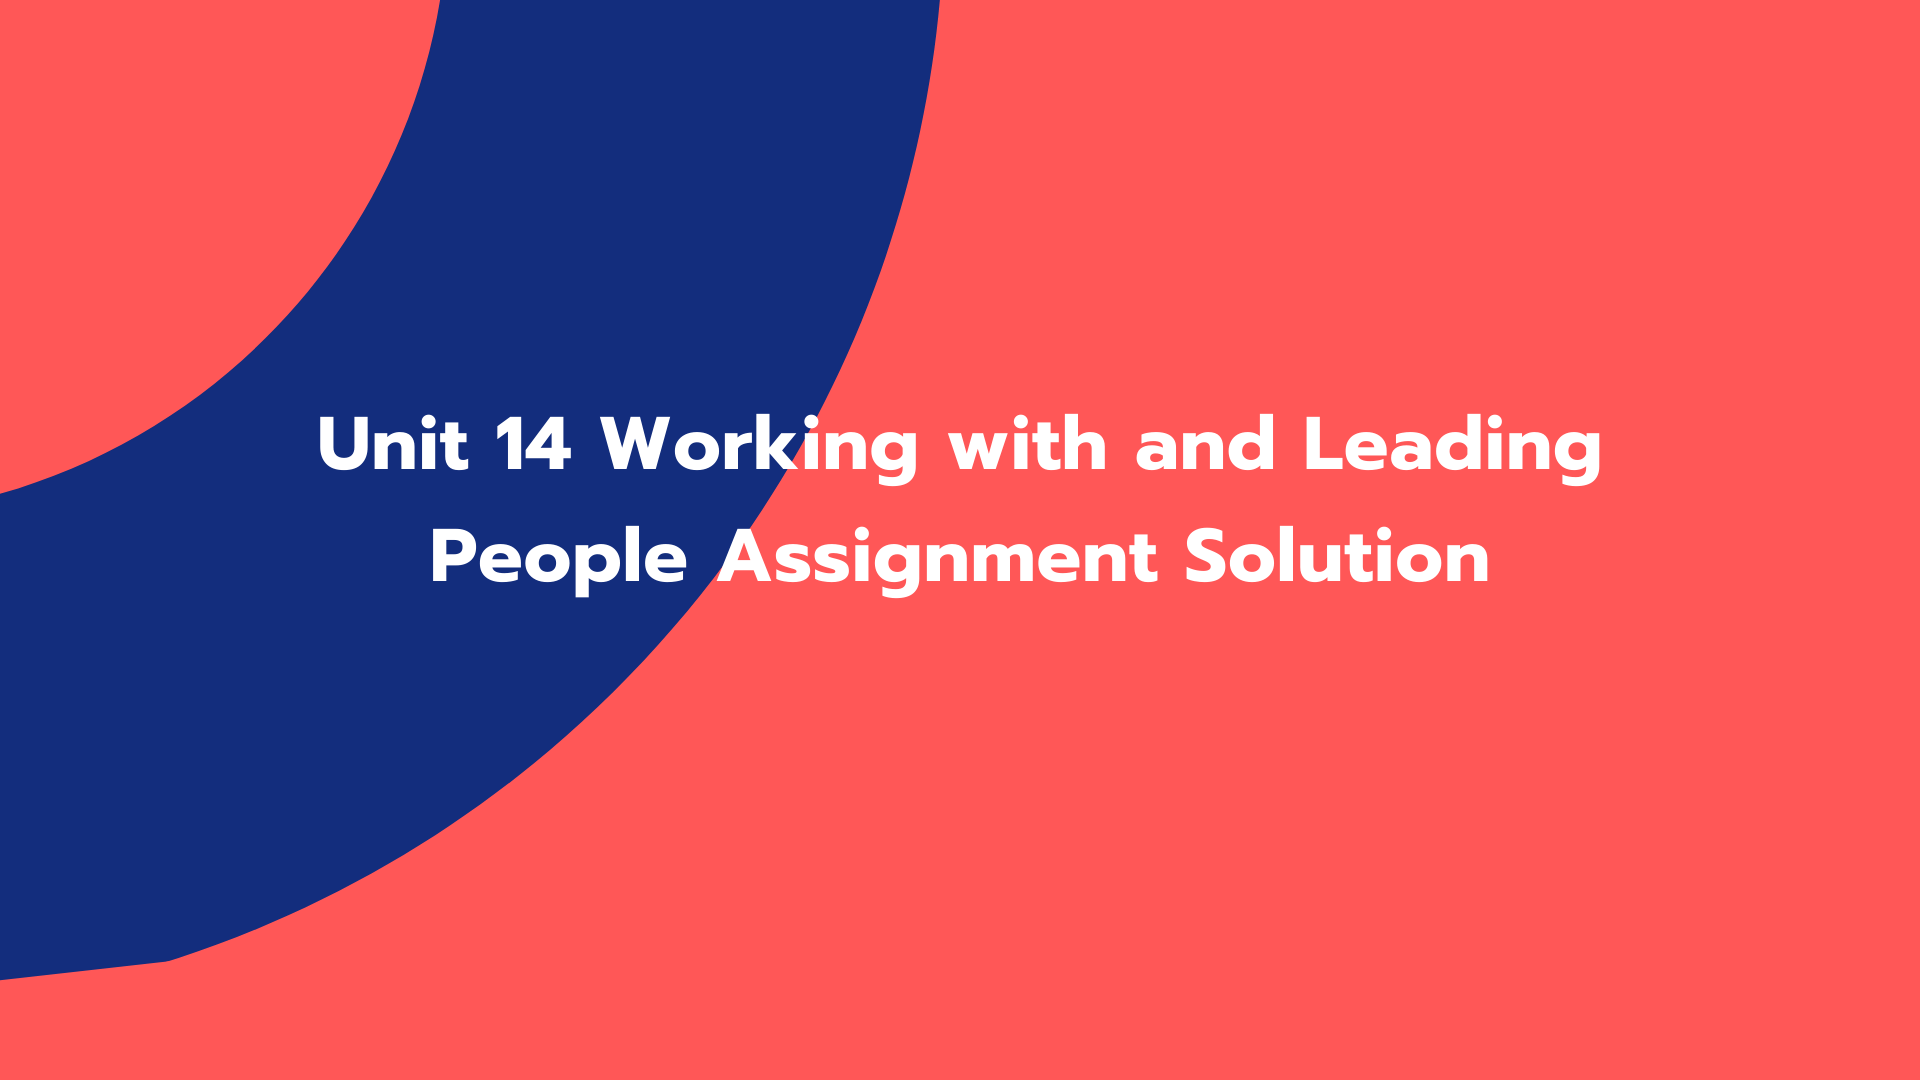 Unit 14 Working with and Leading People Assignment Solution